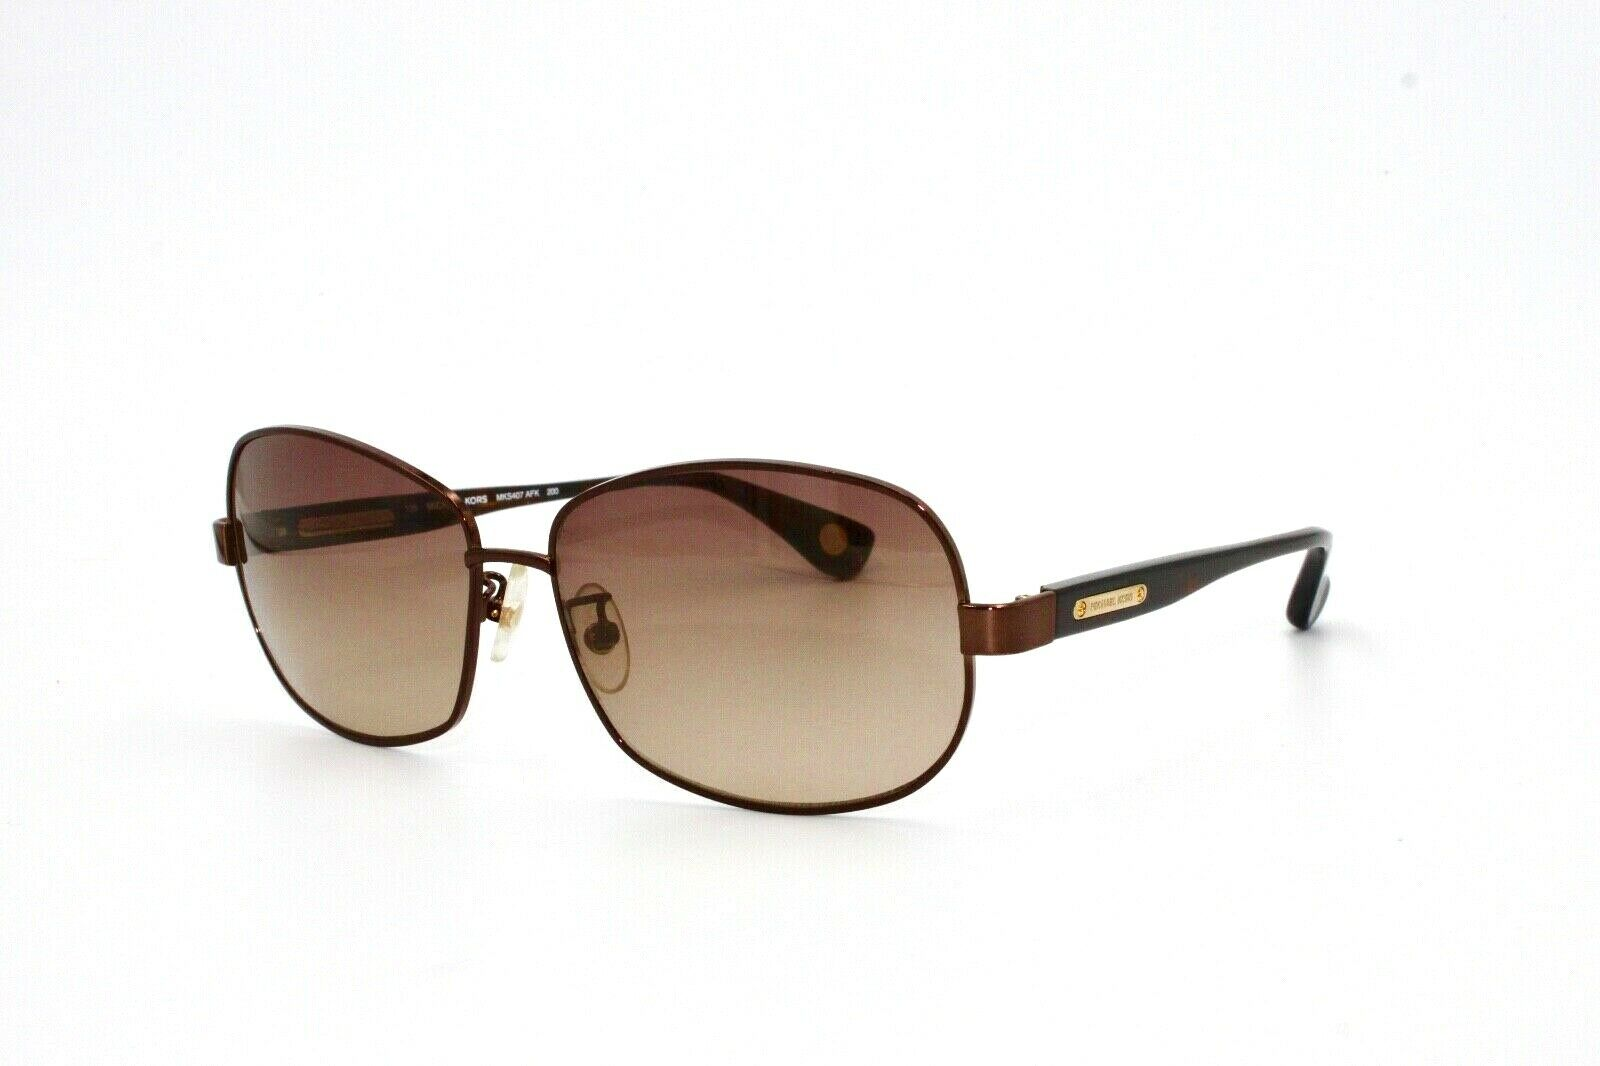 Michael Kors Sunglasses MKS407 AFK 200 62 15 135 Made in Italy - Mydesigneroptic